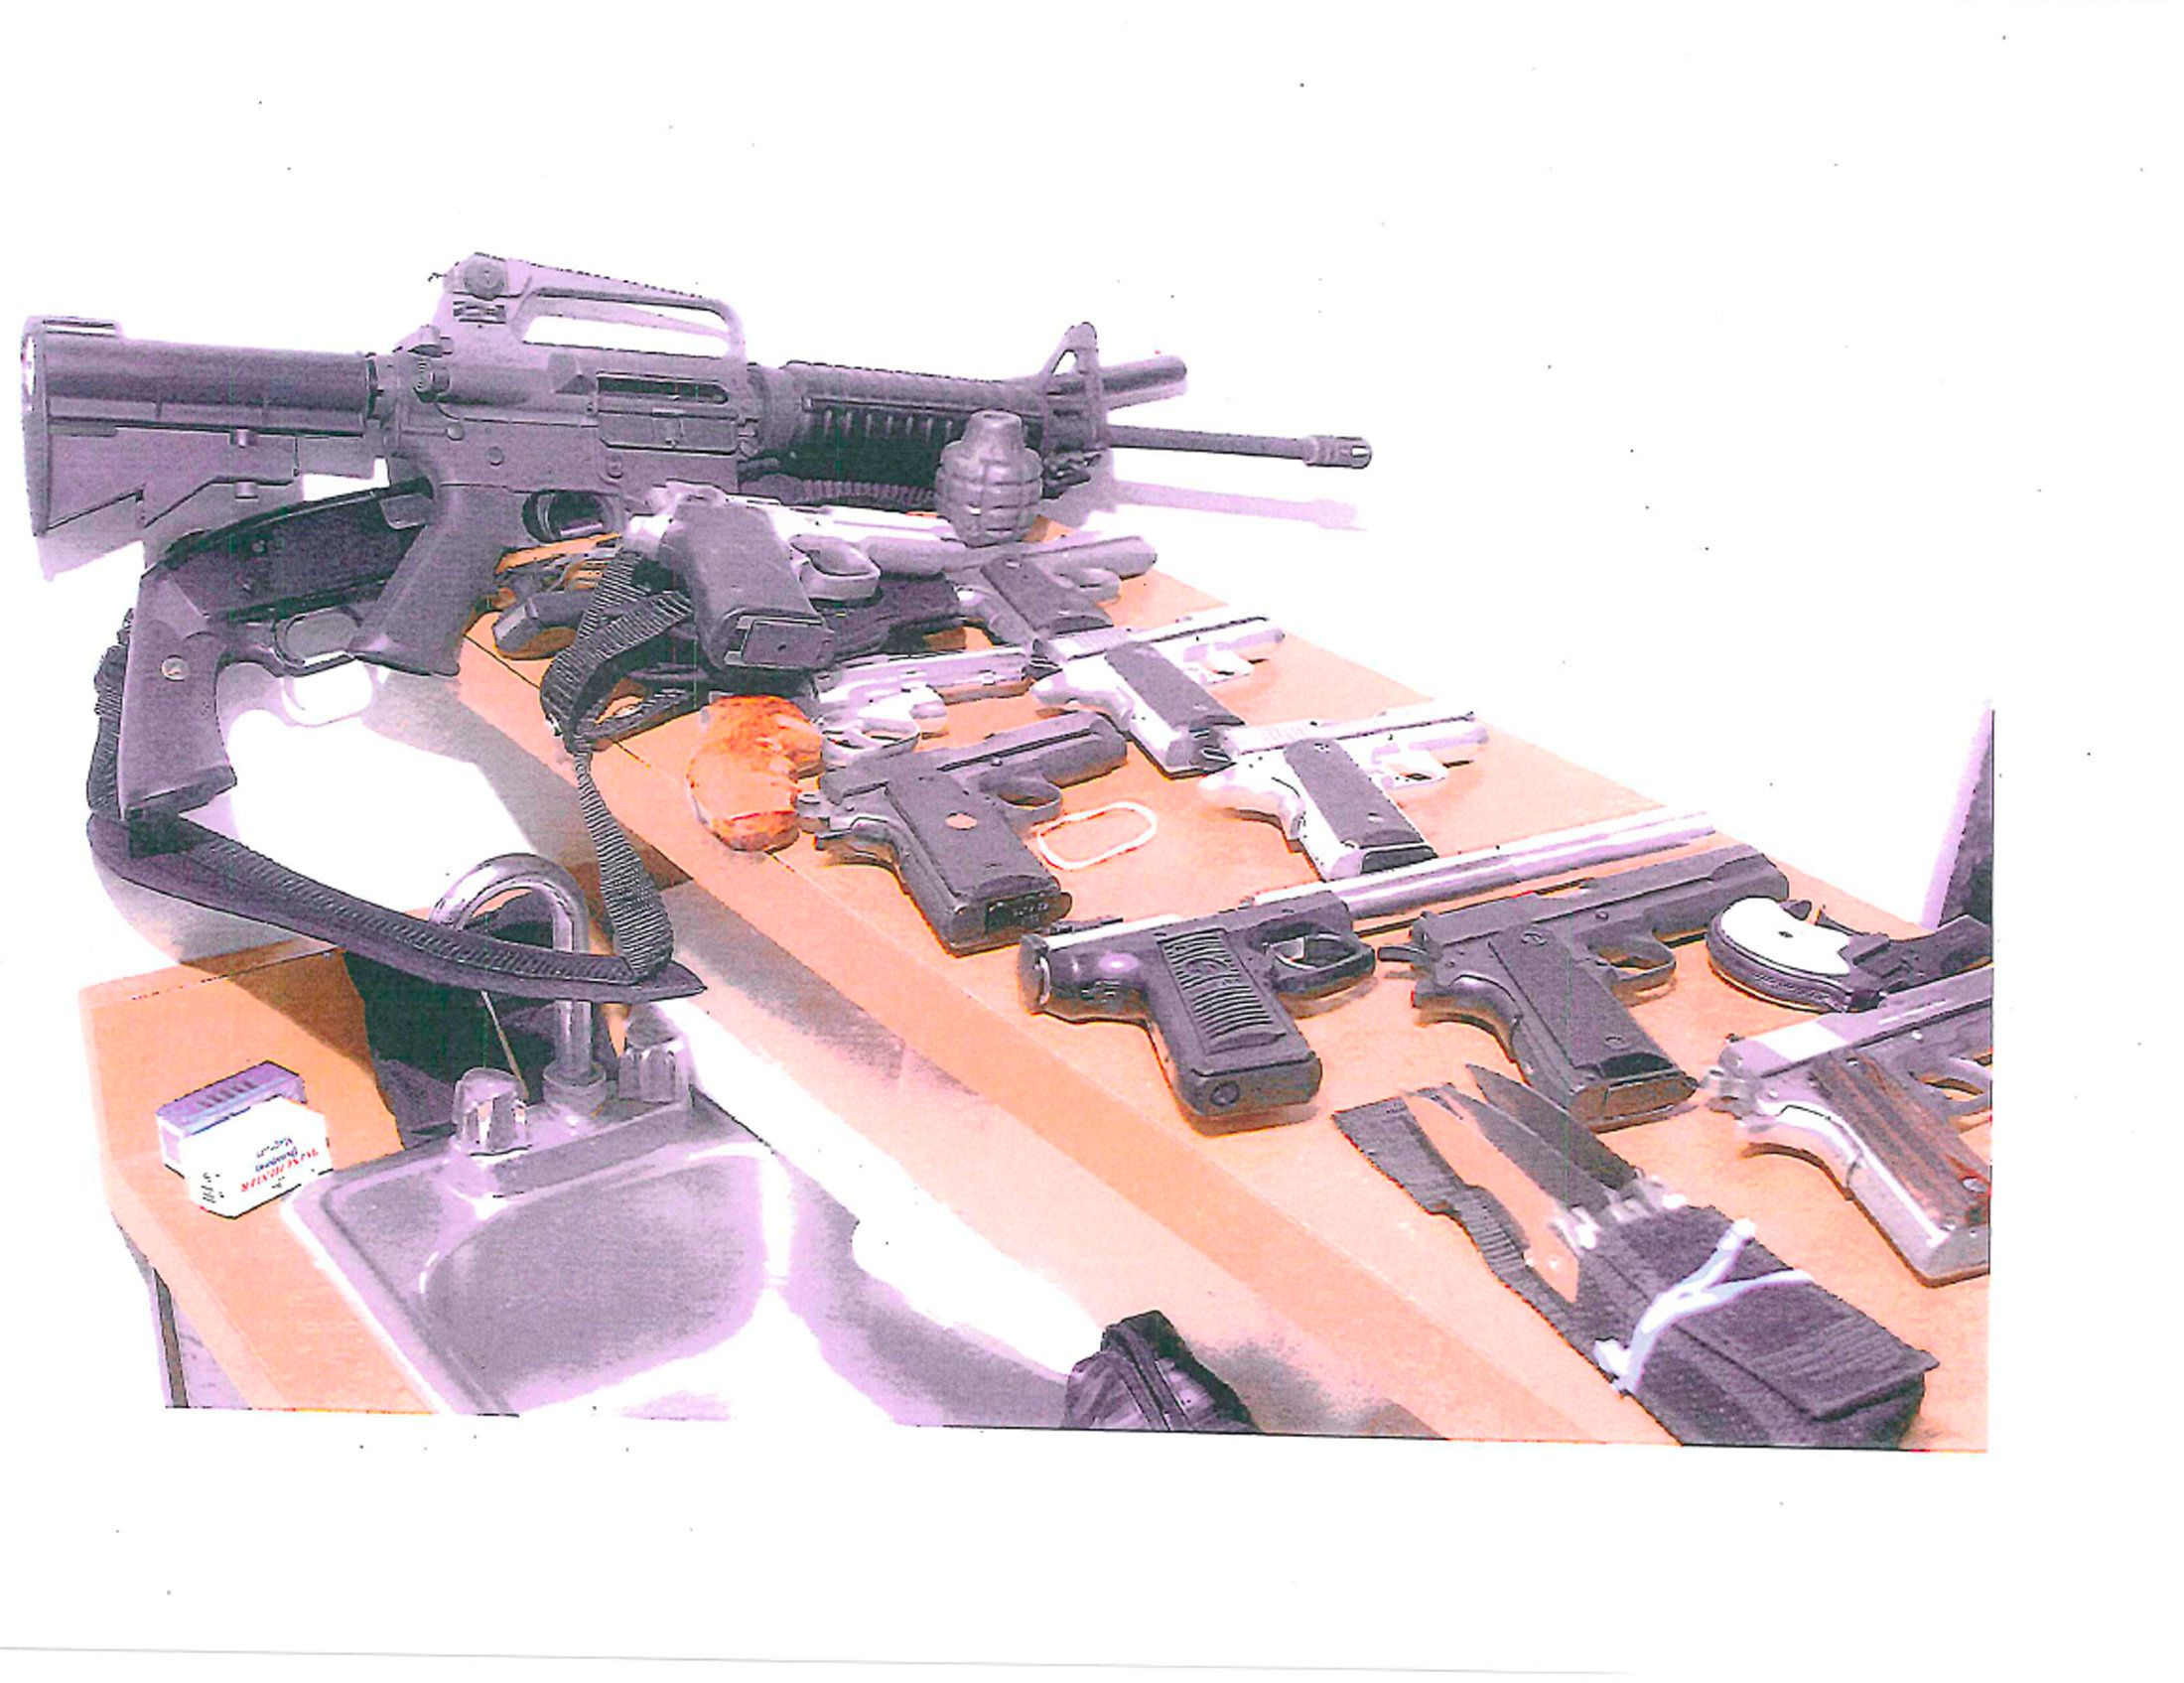 Various weapons seized from Bulger's apartment in Santa Monica, California, in July 2011. Two years later, he was convicted on multiple of charges, including complicity in 11 killings.